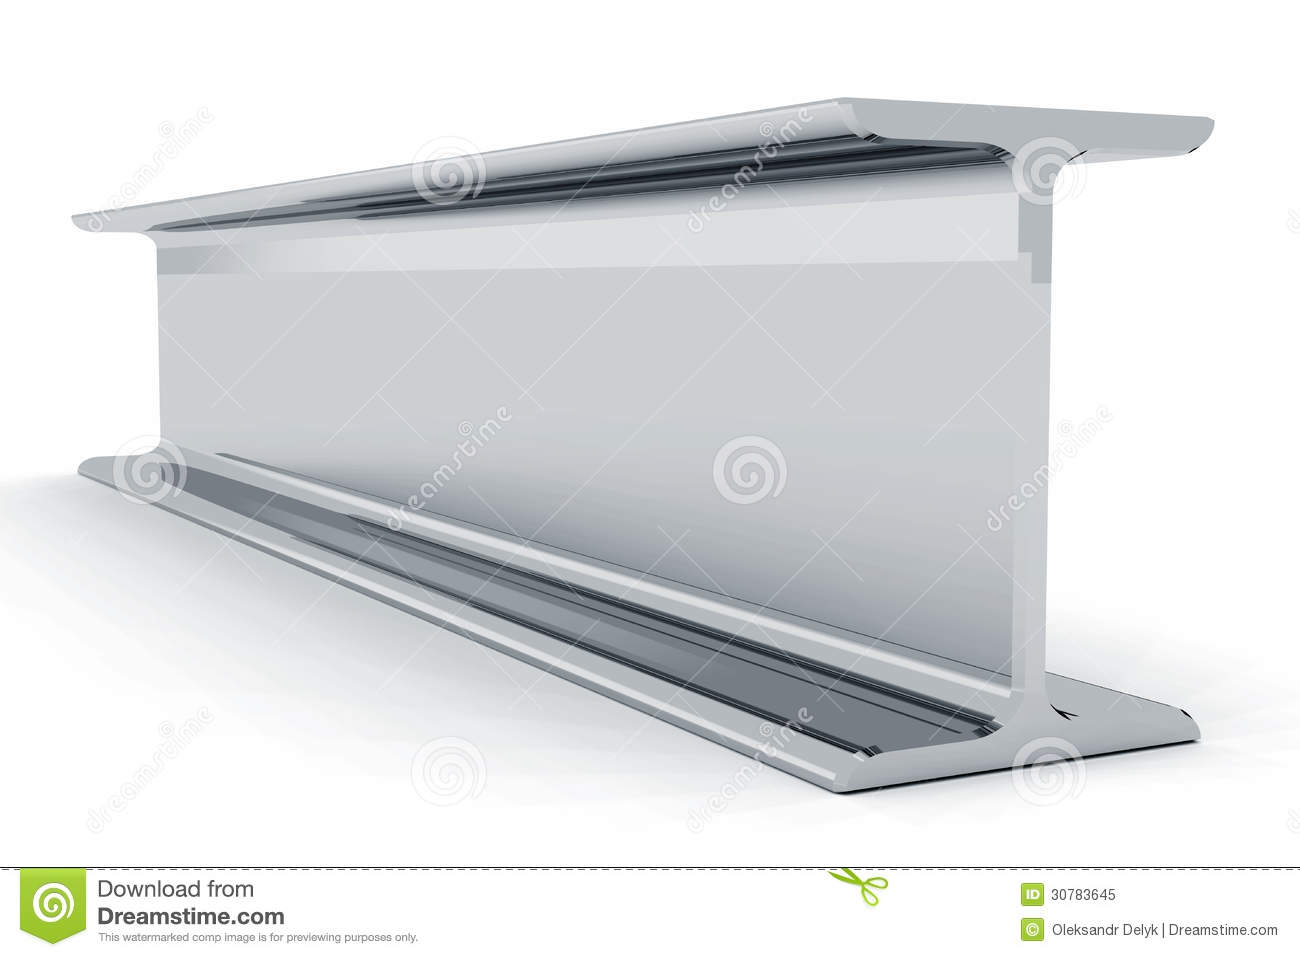 beam Royalty Free Stock Photo - Image: 30783645